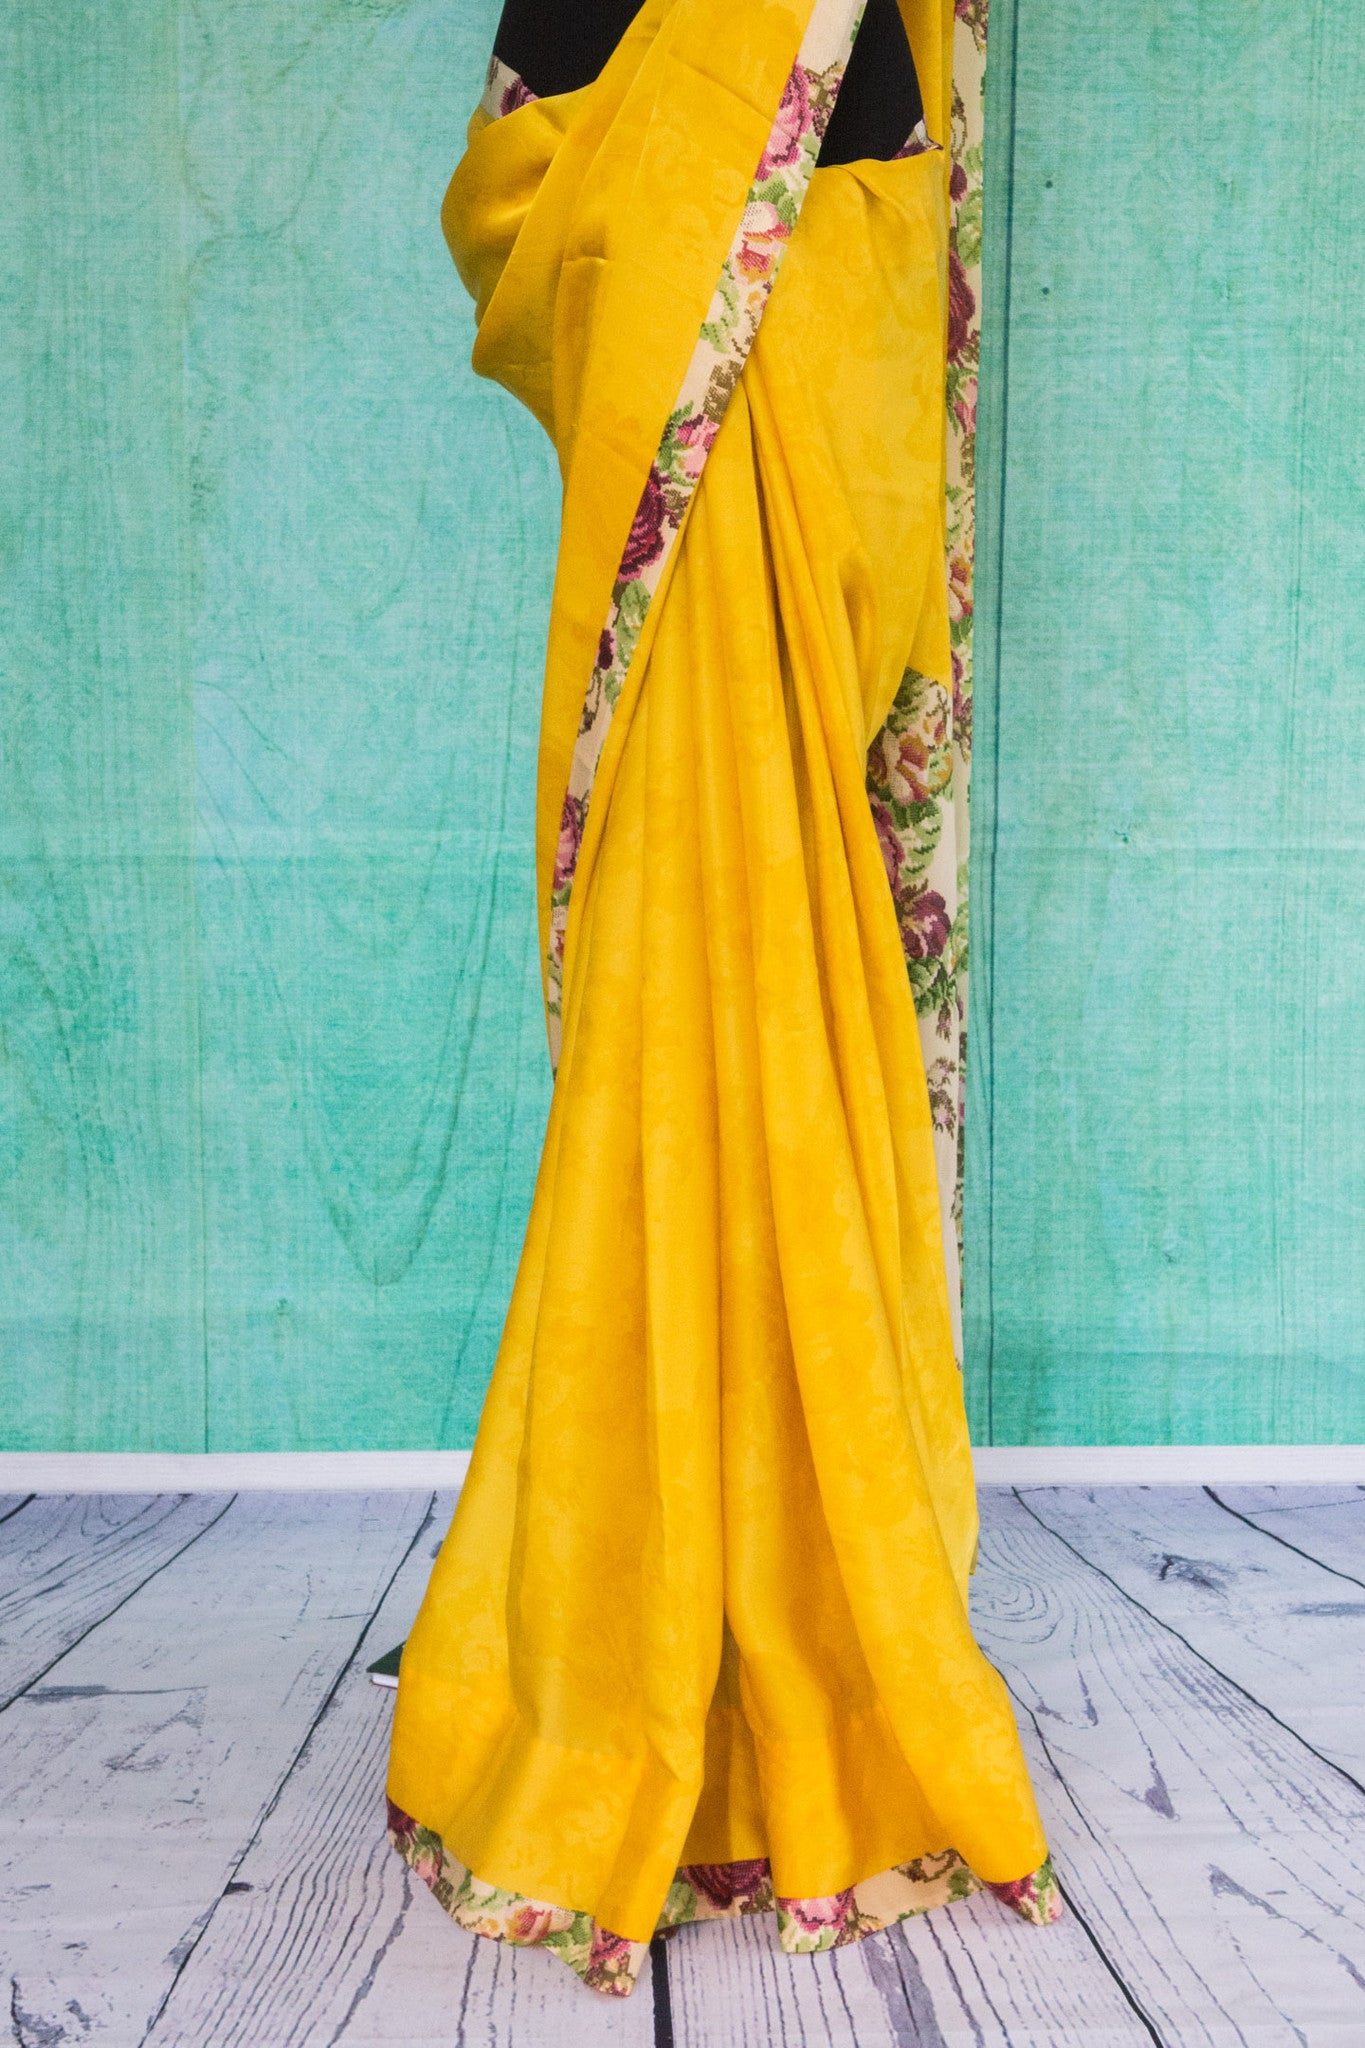 90c092 Plain yellow saree with an elegant floral blouse and border trim, perfect for ethnic festivities. Buy this satin crepe saree in USA at our Indian wear store Pure Elegance.